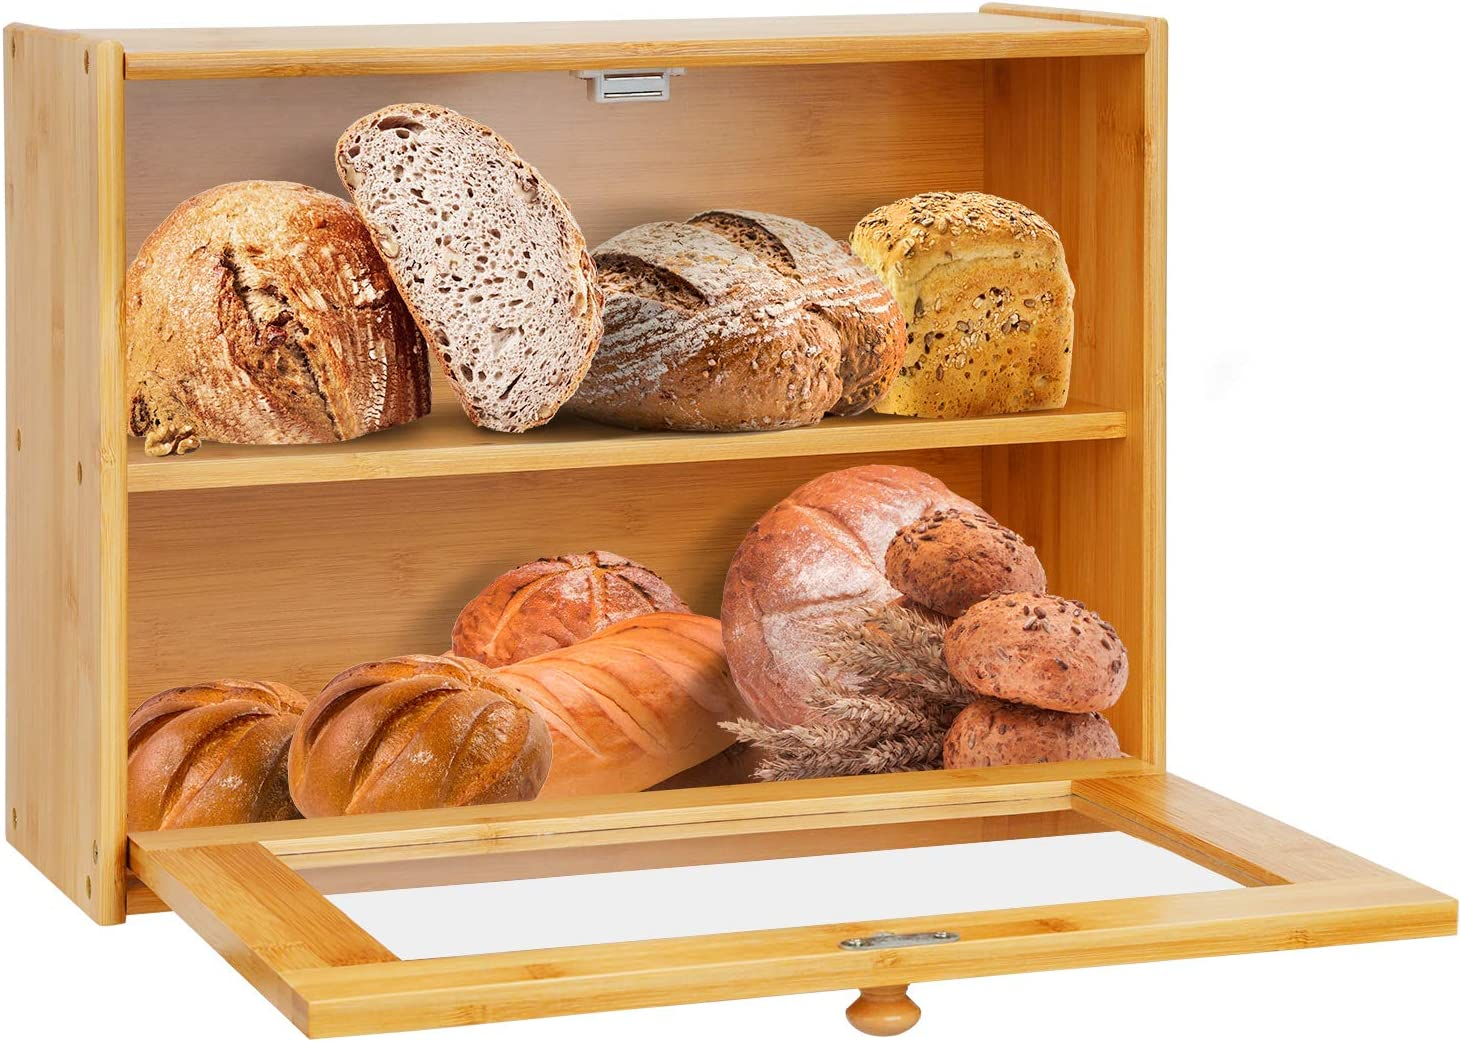 Bamboo Bread Box Countertop Bread Bin 2-Layer Dry Food Container Kitchen Storage Crock Tin Keeper with Drop Down Front Acrylic Window Pastries Loaf Storage Shelf Self-Assembly for Jam Dry Food Fruits